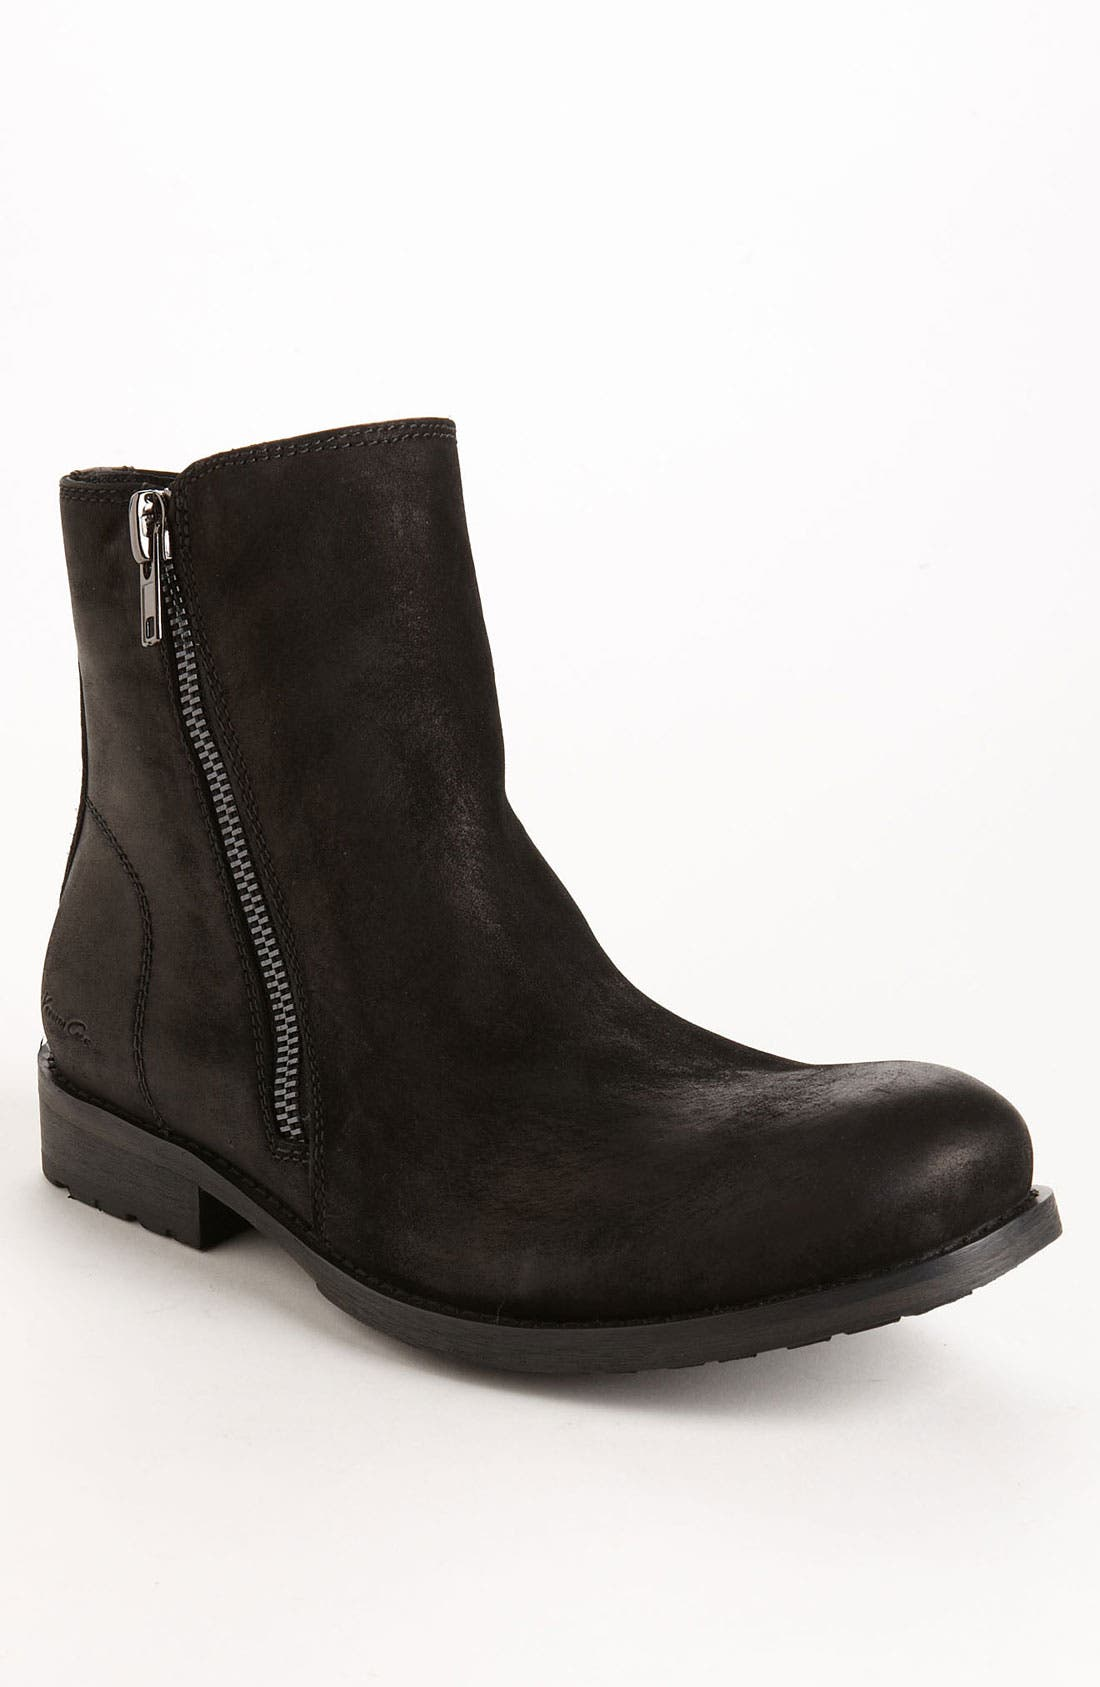 Main Image - Kenneth Cole New York 'An-arc-hy' Boot